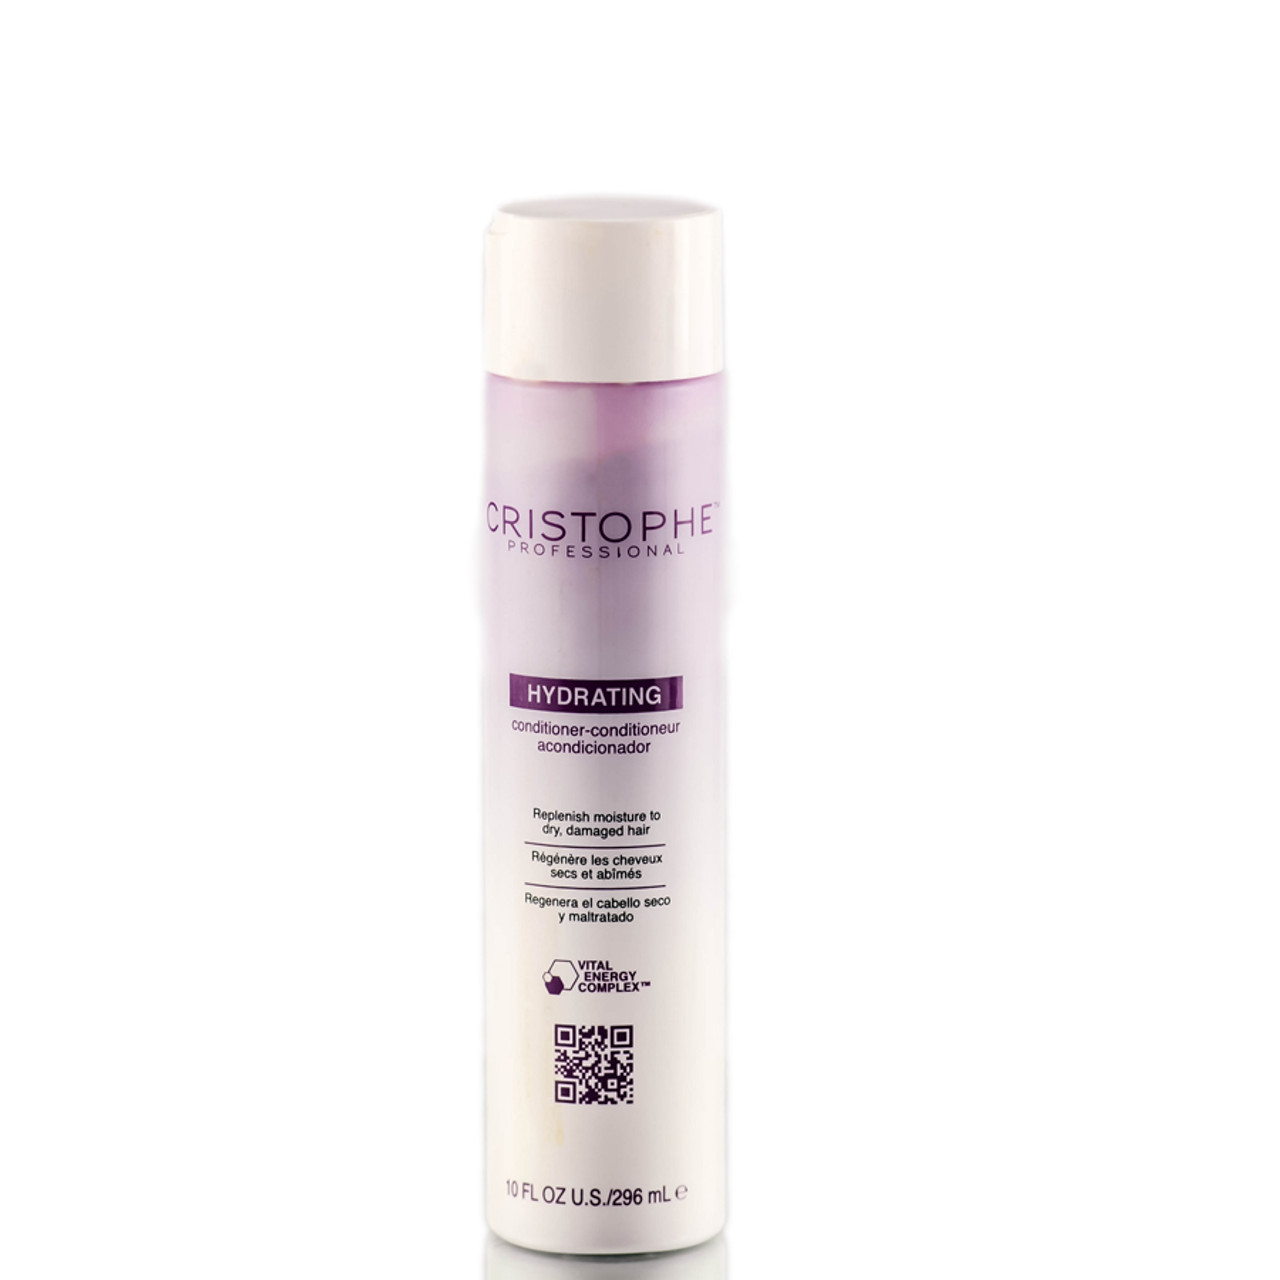 Cristophe professional hydrating conditioner sleekshop for Cristophe salon prices